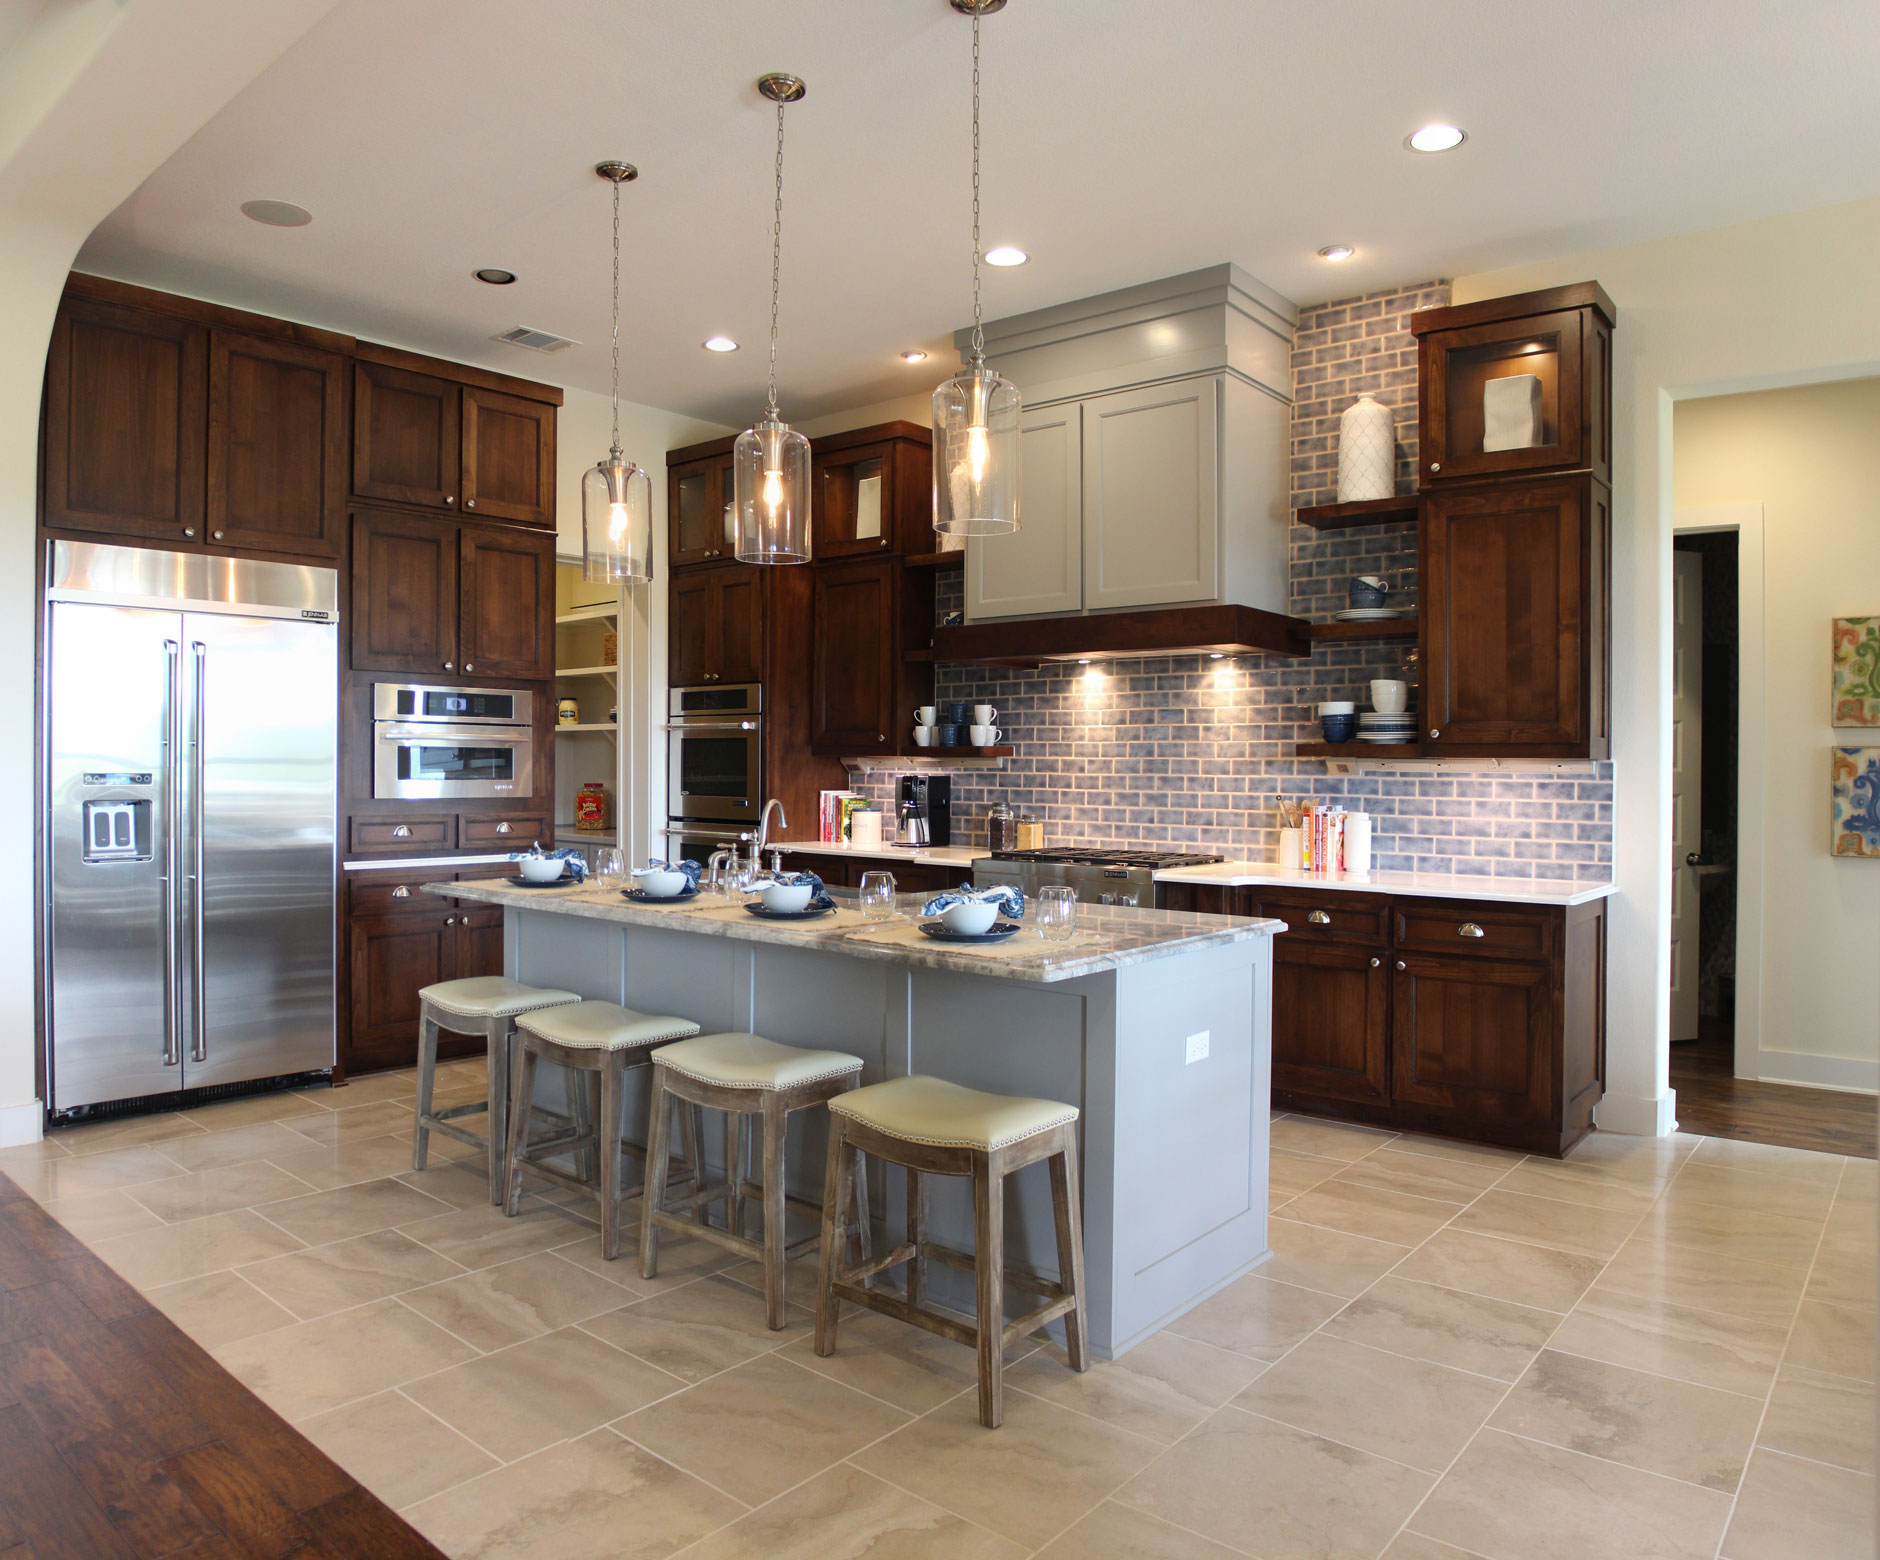 choose flooring compliments cabinet color staining kitchen cabinets Burrows Cabinets kitchen cabinets in stained perimeter cabinets and gray island Craftsman range hood and